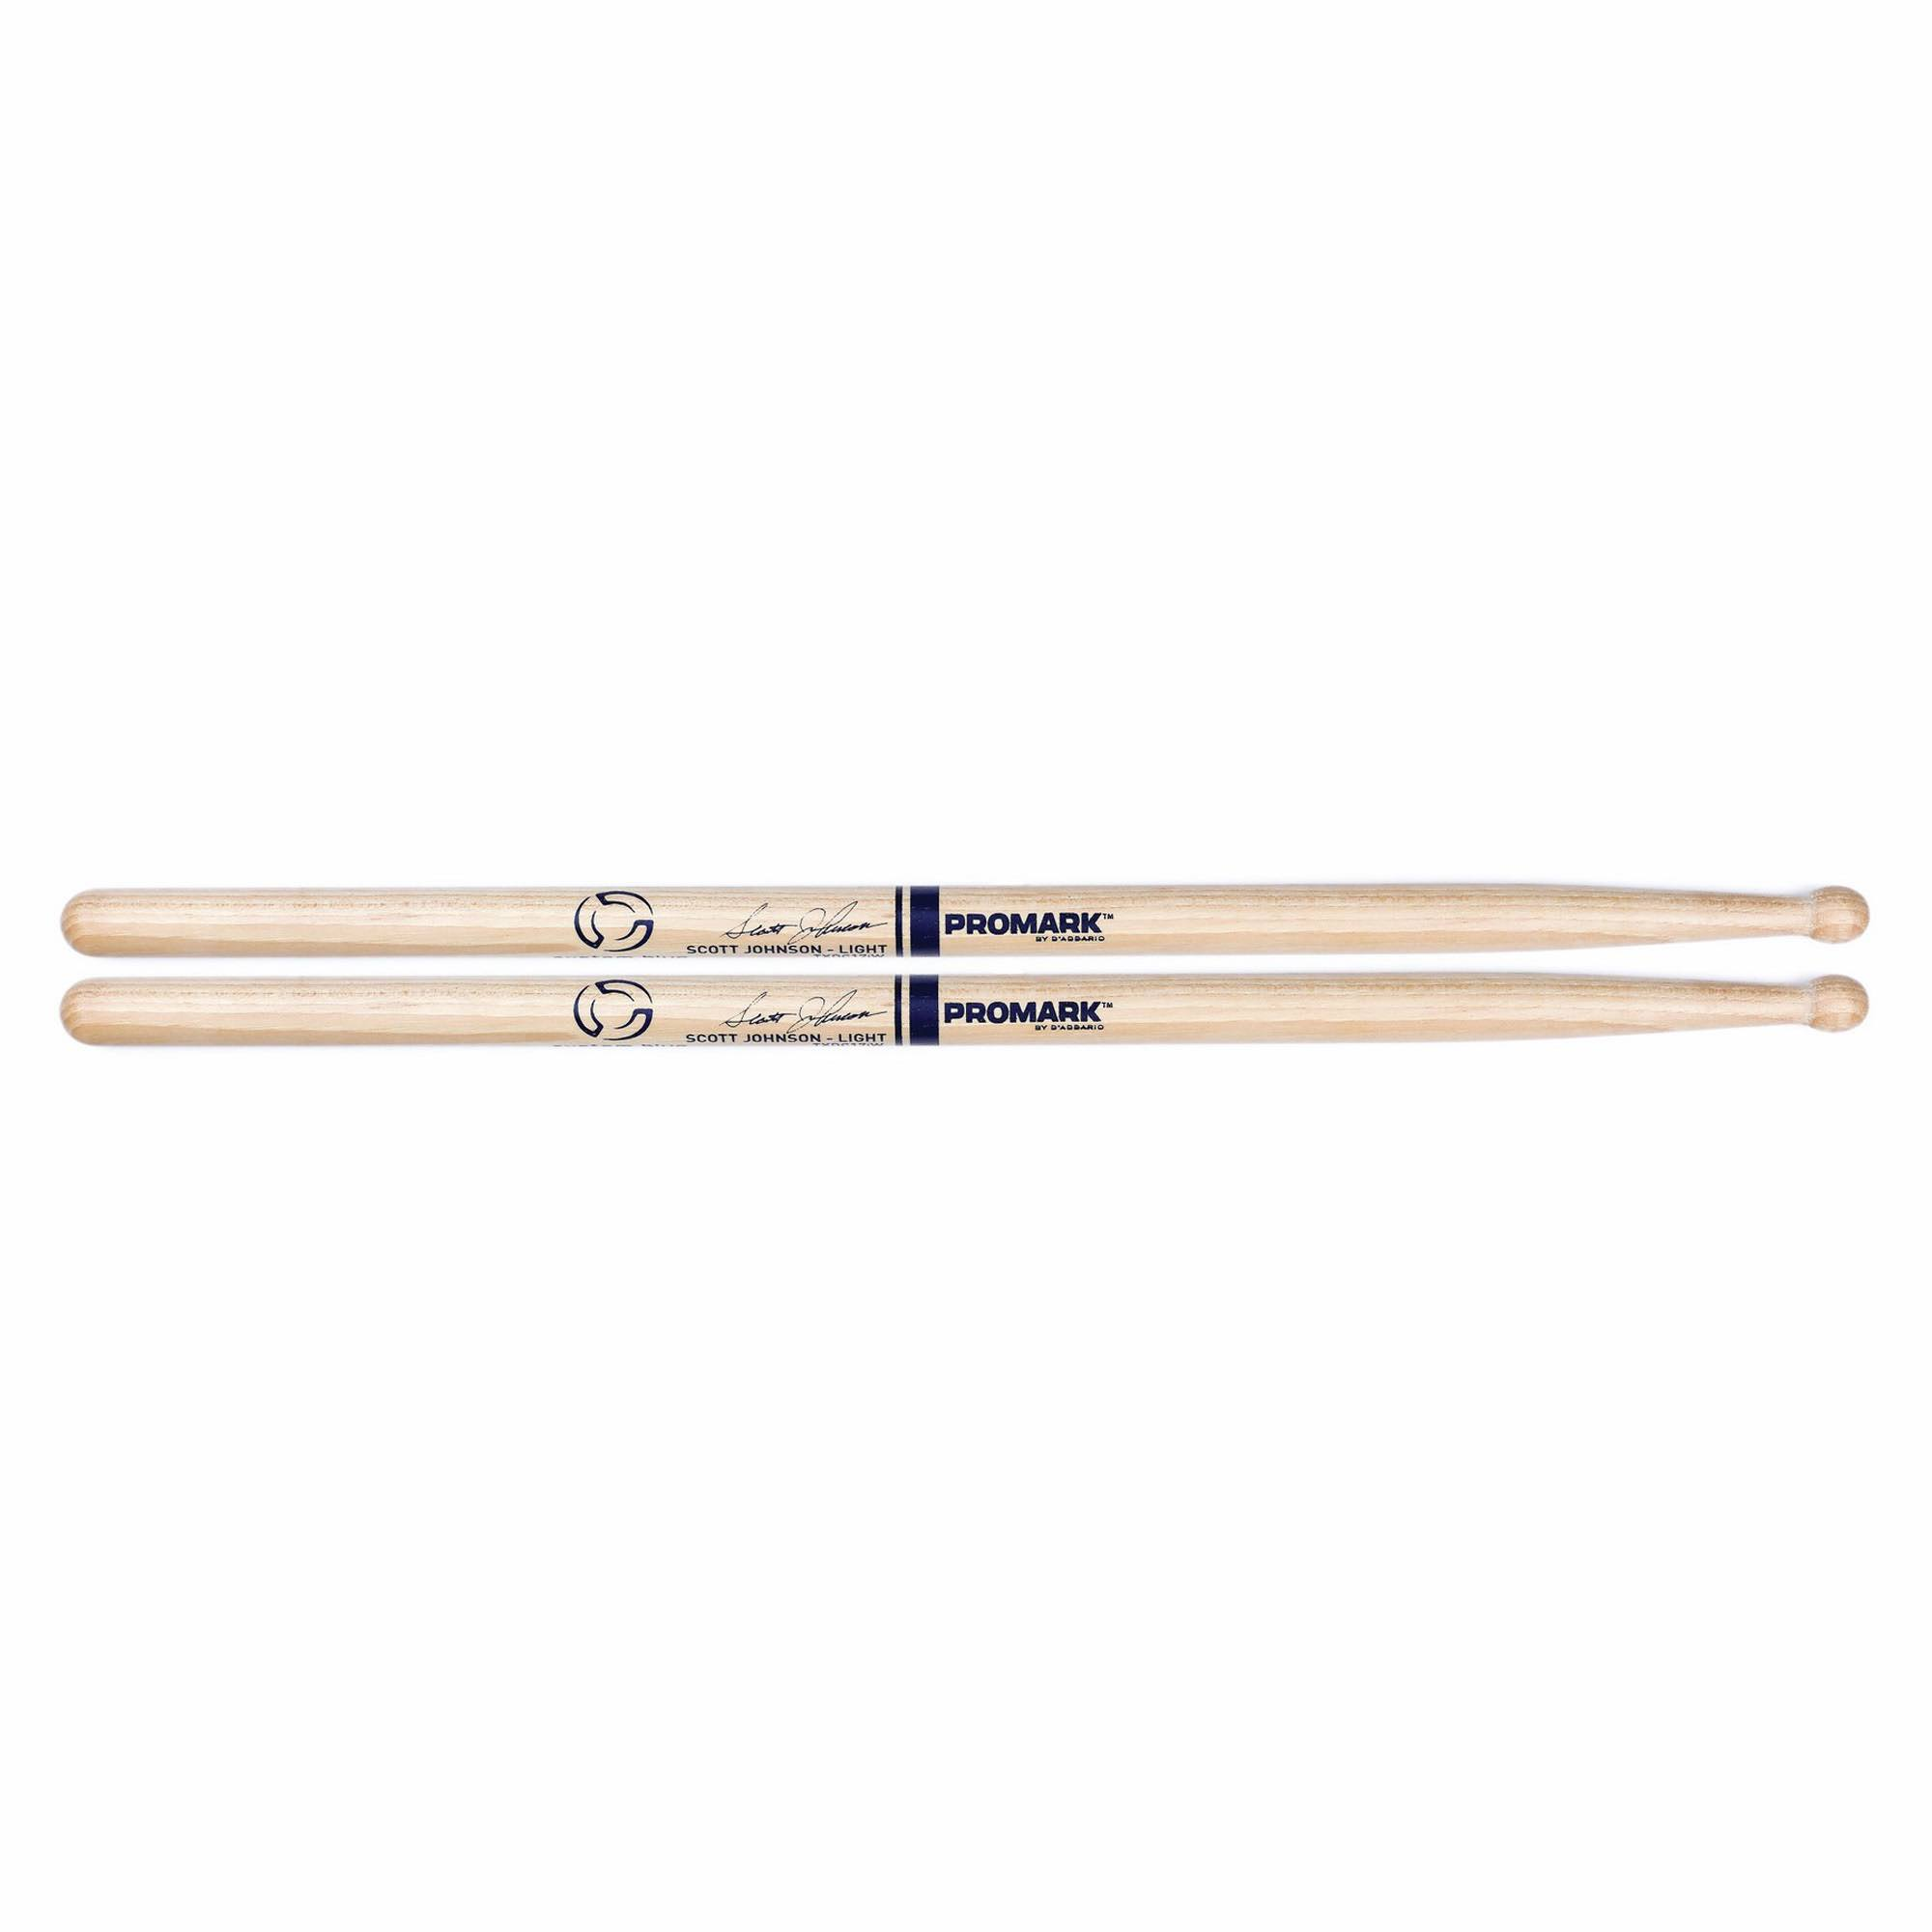 Pro Mark Txdc17iw American Hickory Scott Johnson Marching Drumstick - Blue